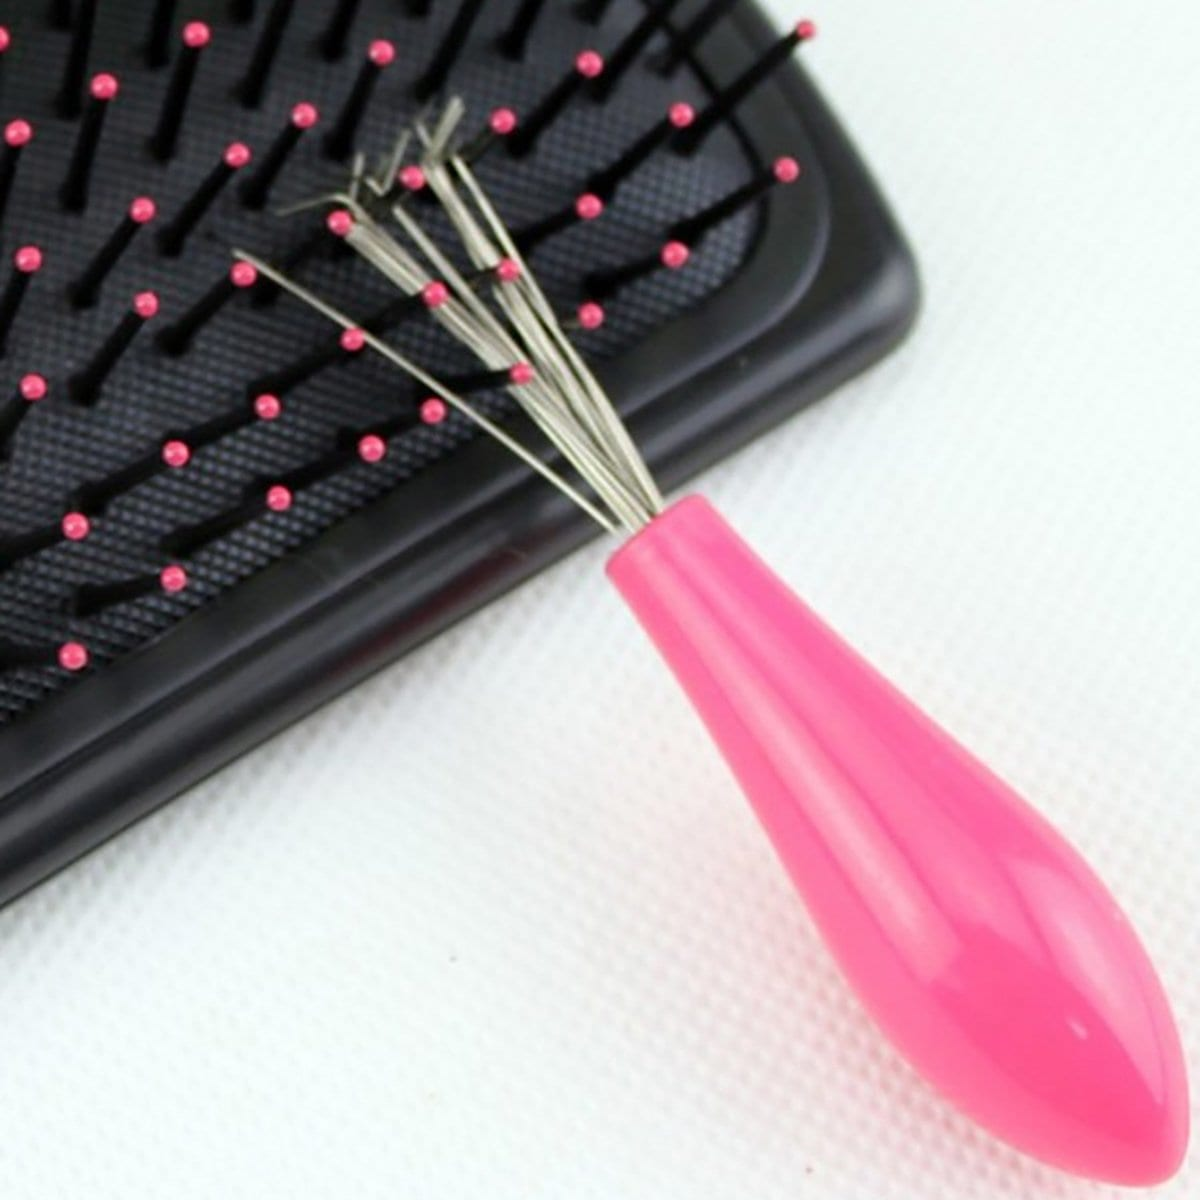 SHEIN coupon: Hair Brush Cleaner